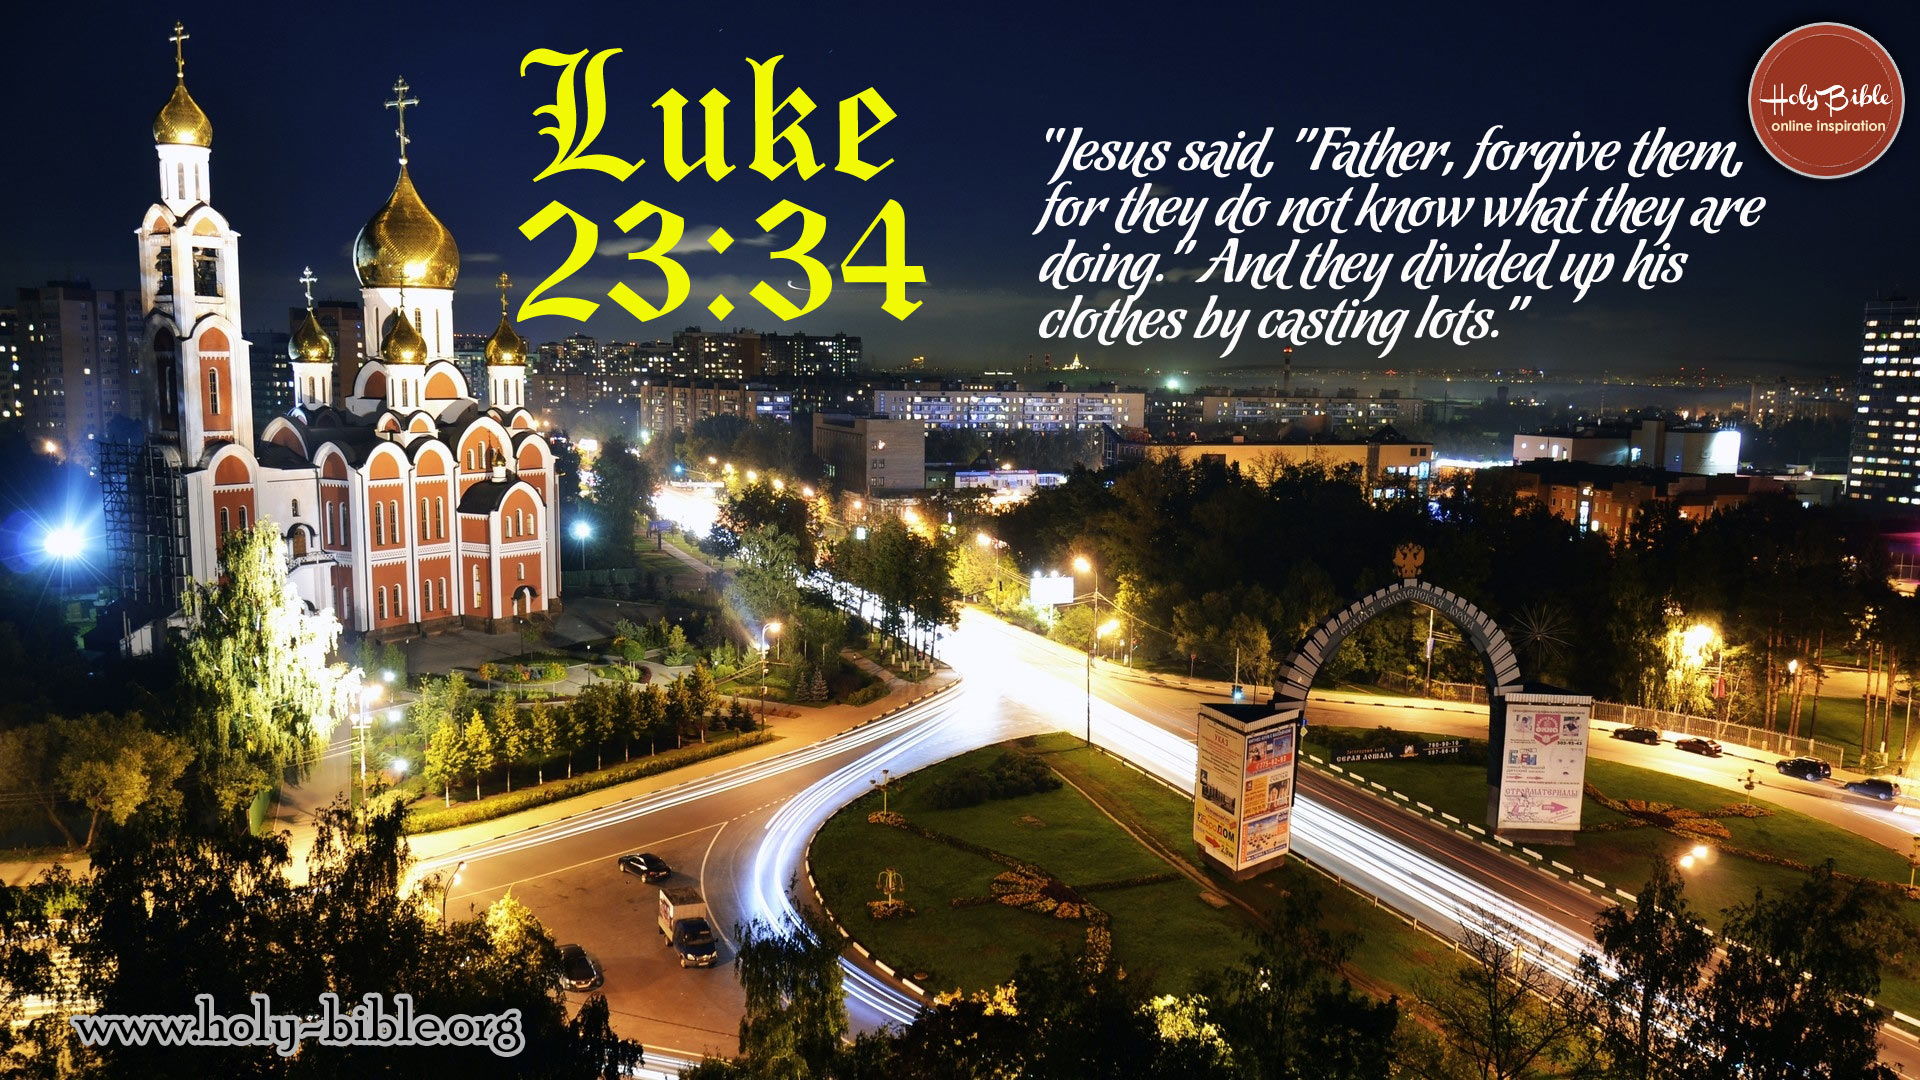 Bible Verse of the day - Luke 23:34